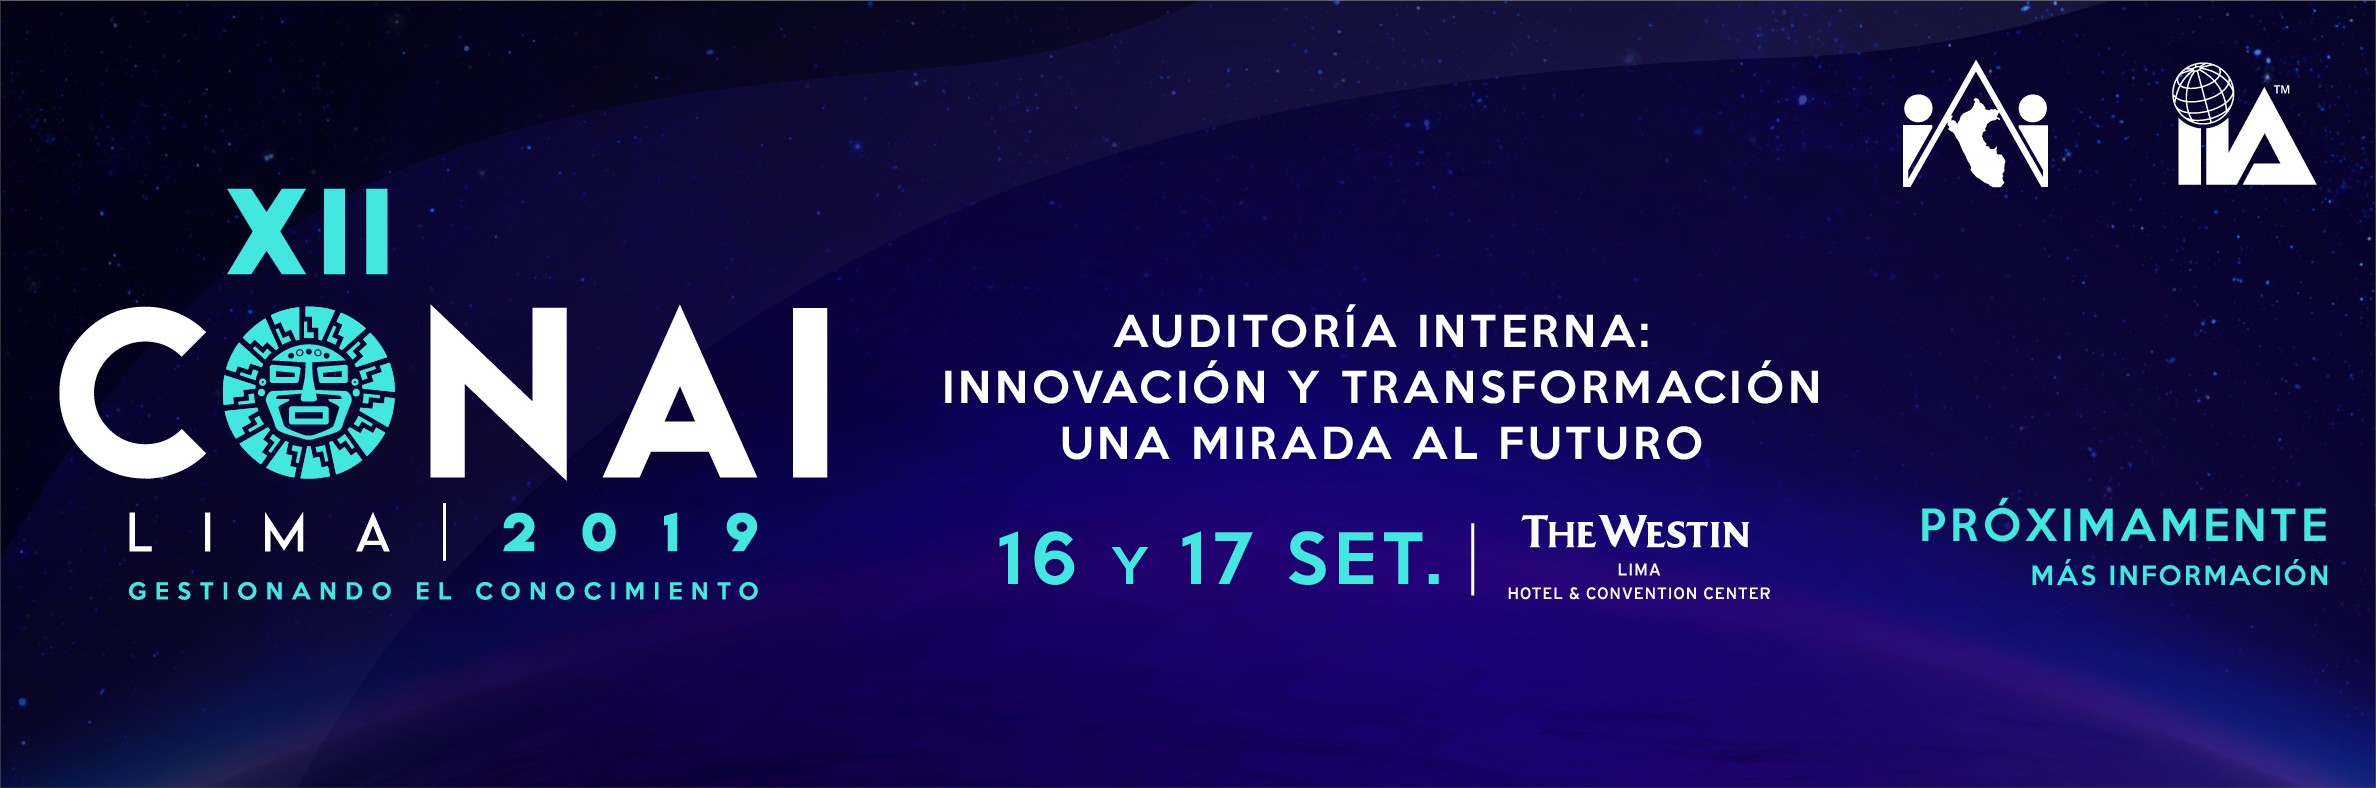 Instituto de Auditores Internos del Perú – IAI Perú